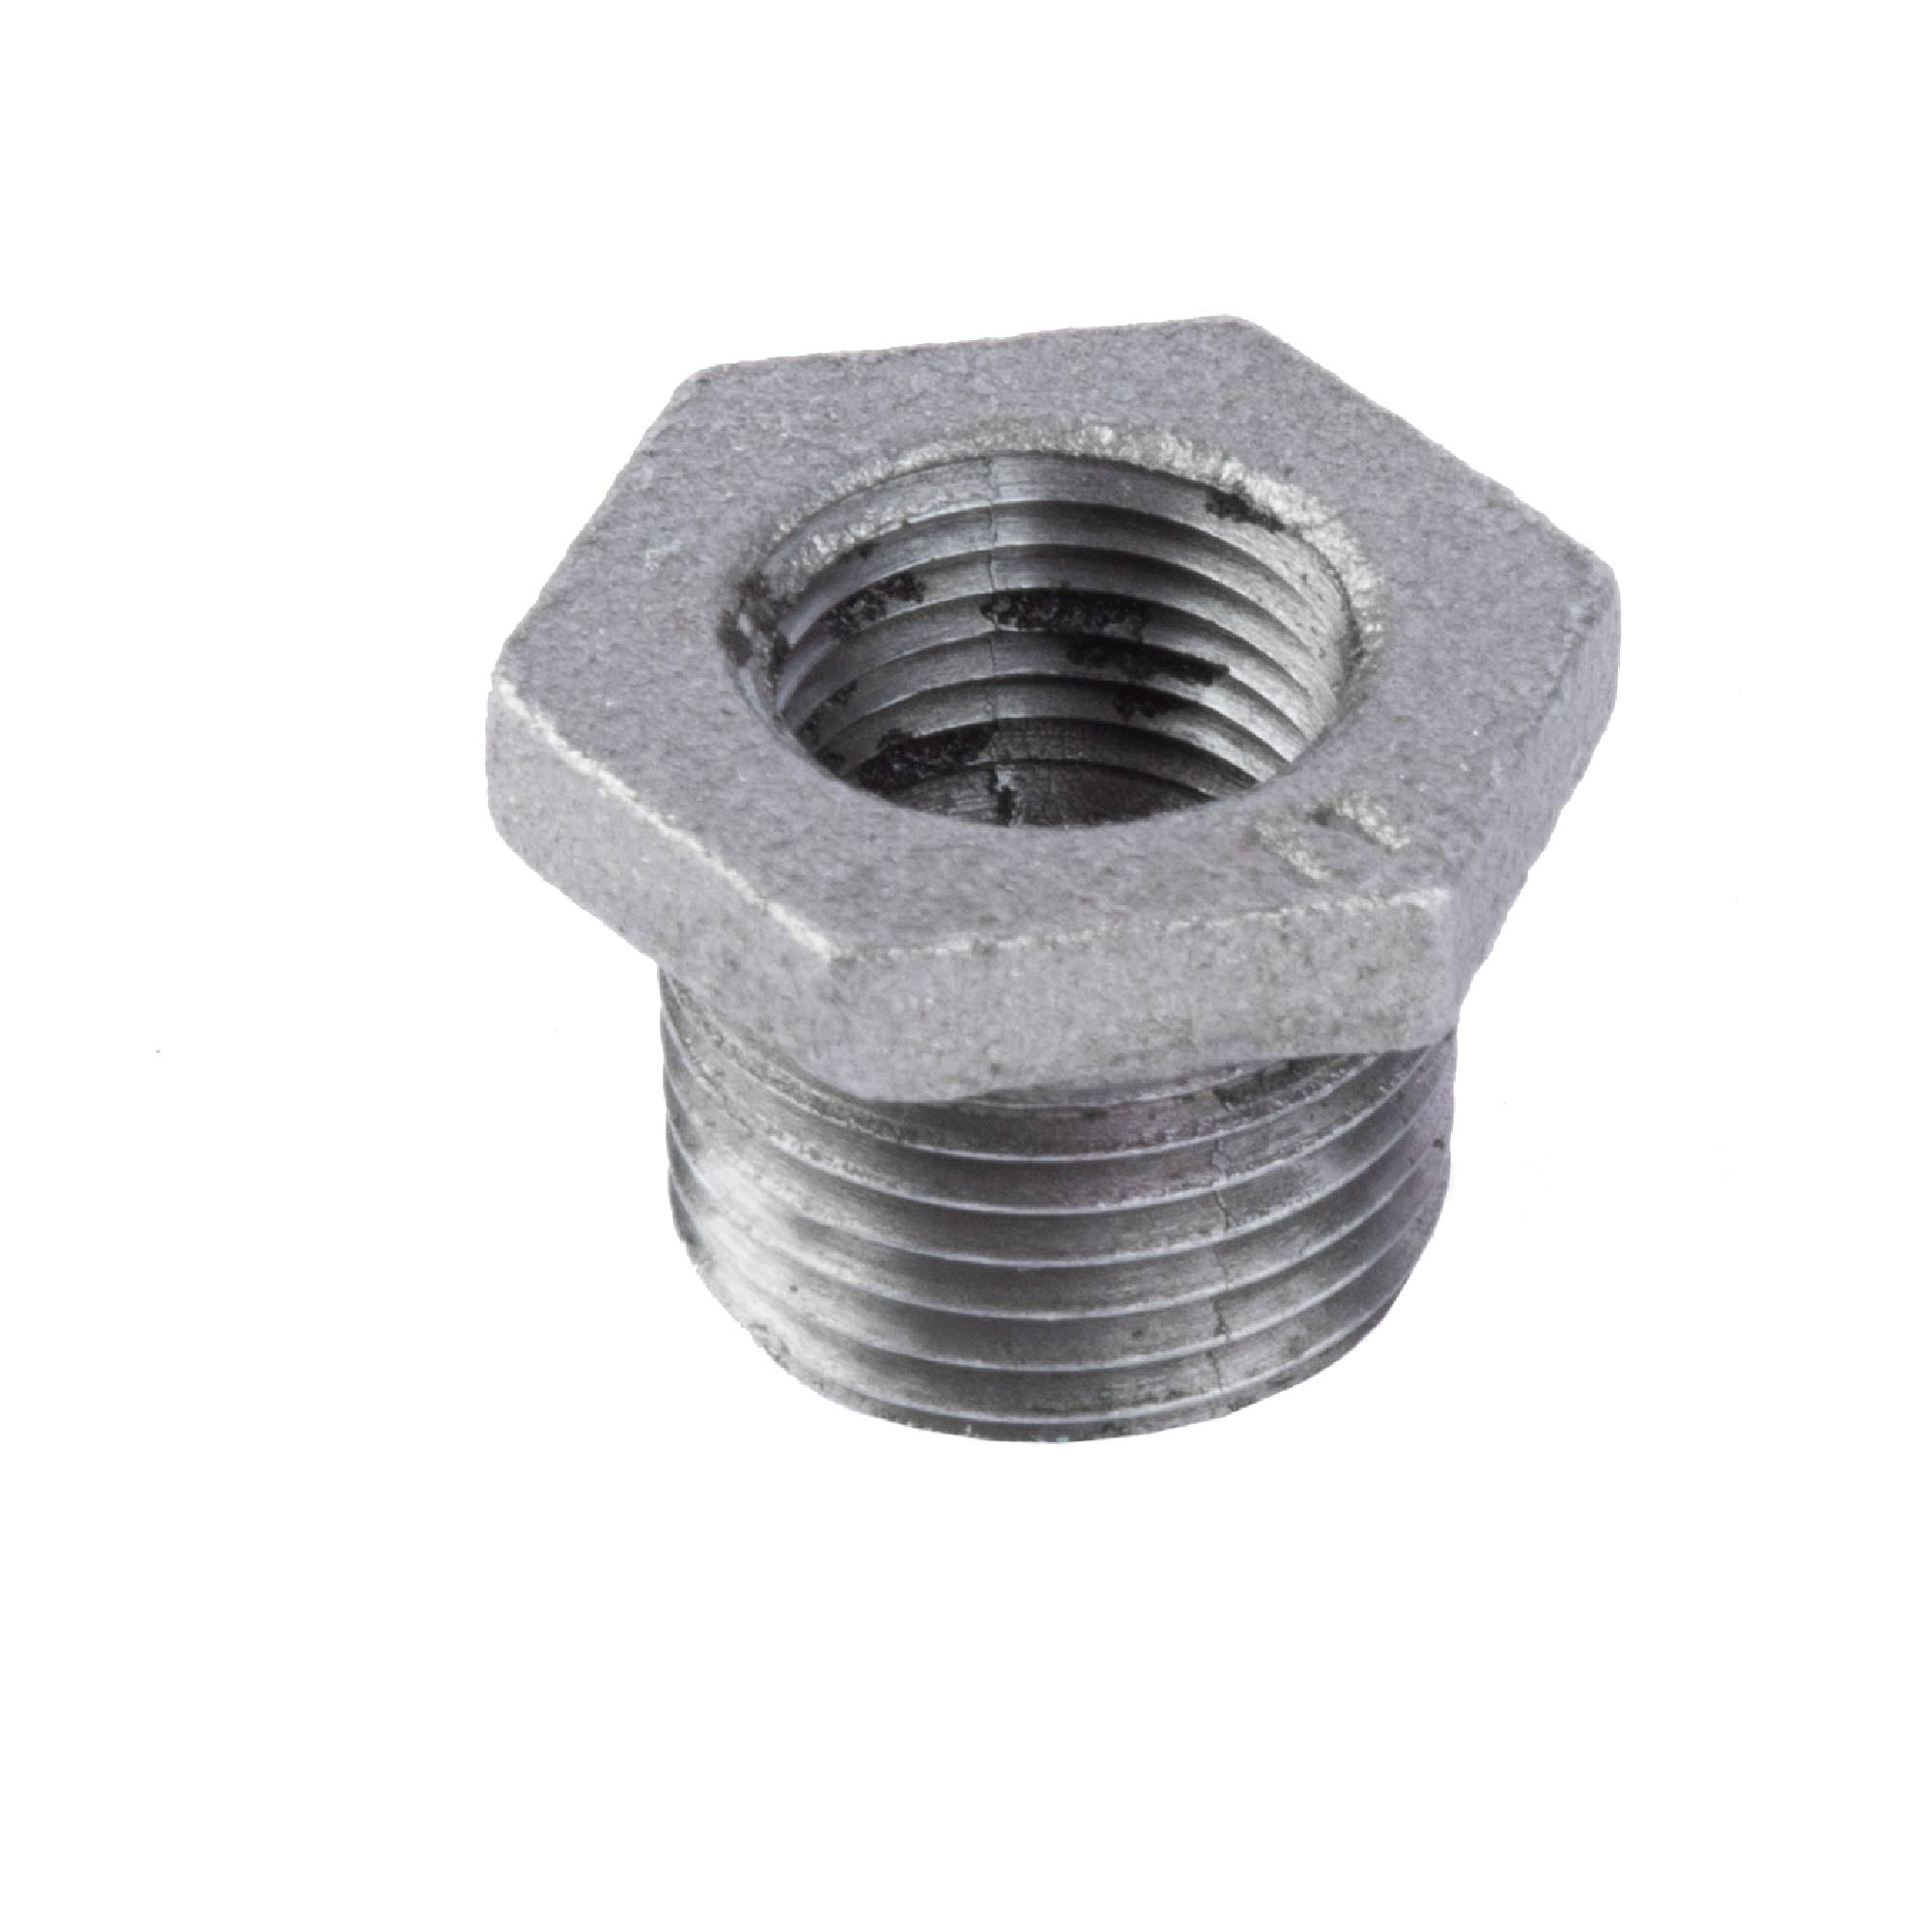 1/2 in. X 3/8 in. Bushing - Pipe Decor